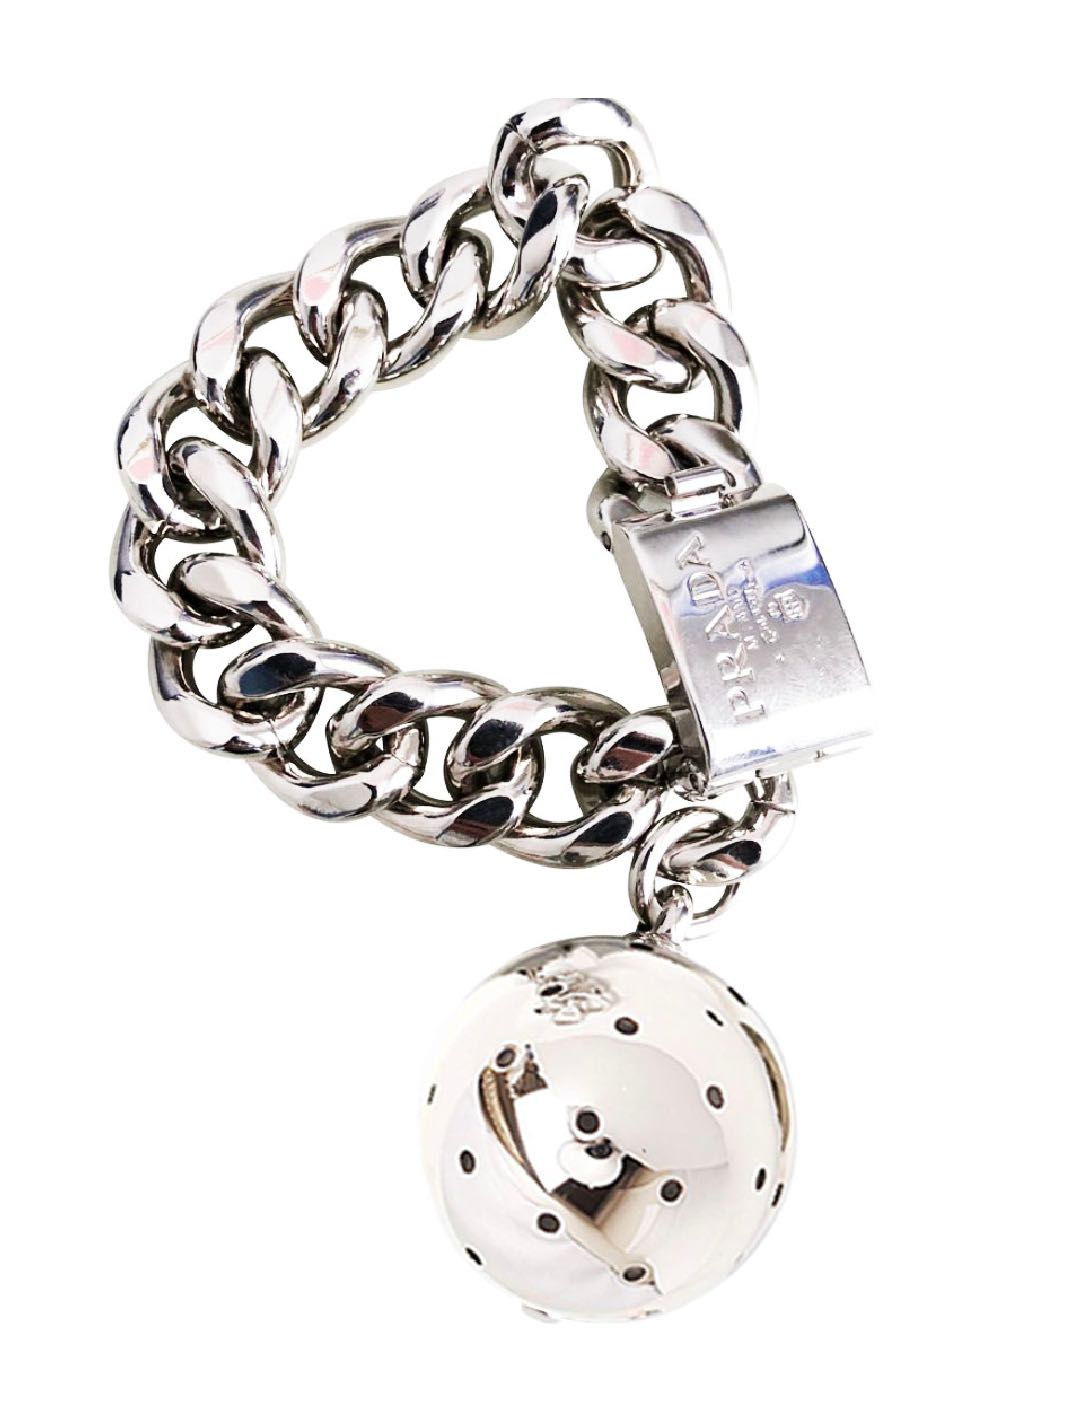 Metal Cutout Ball Chain Bracelet - The Bobby Boga